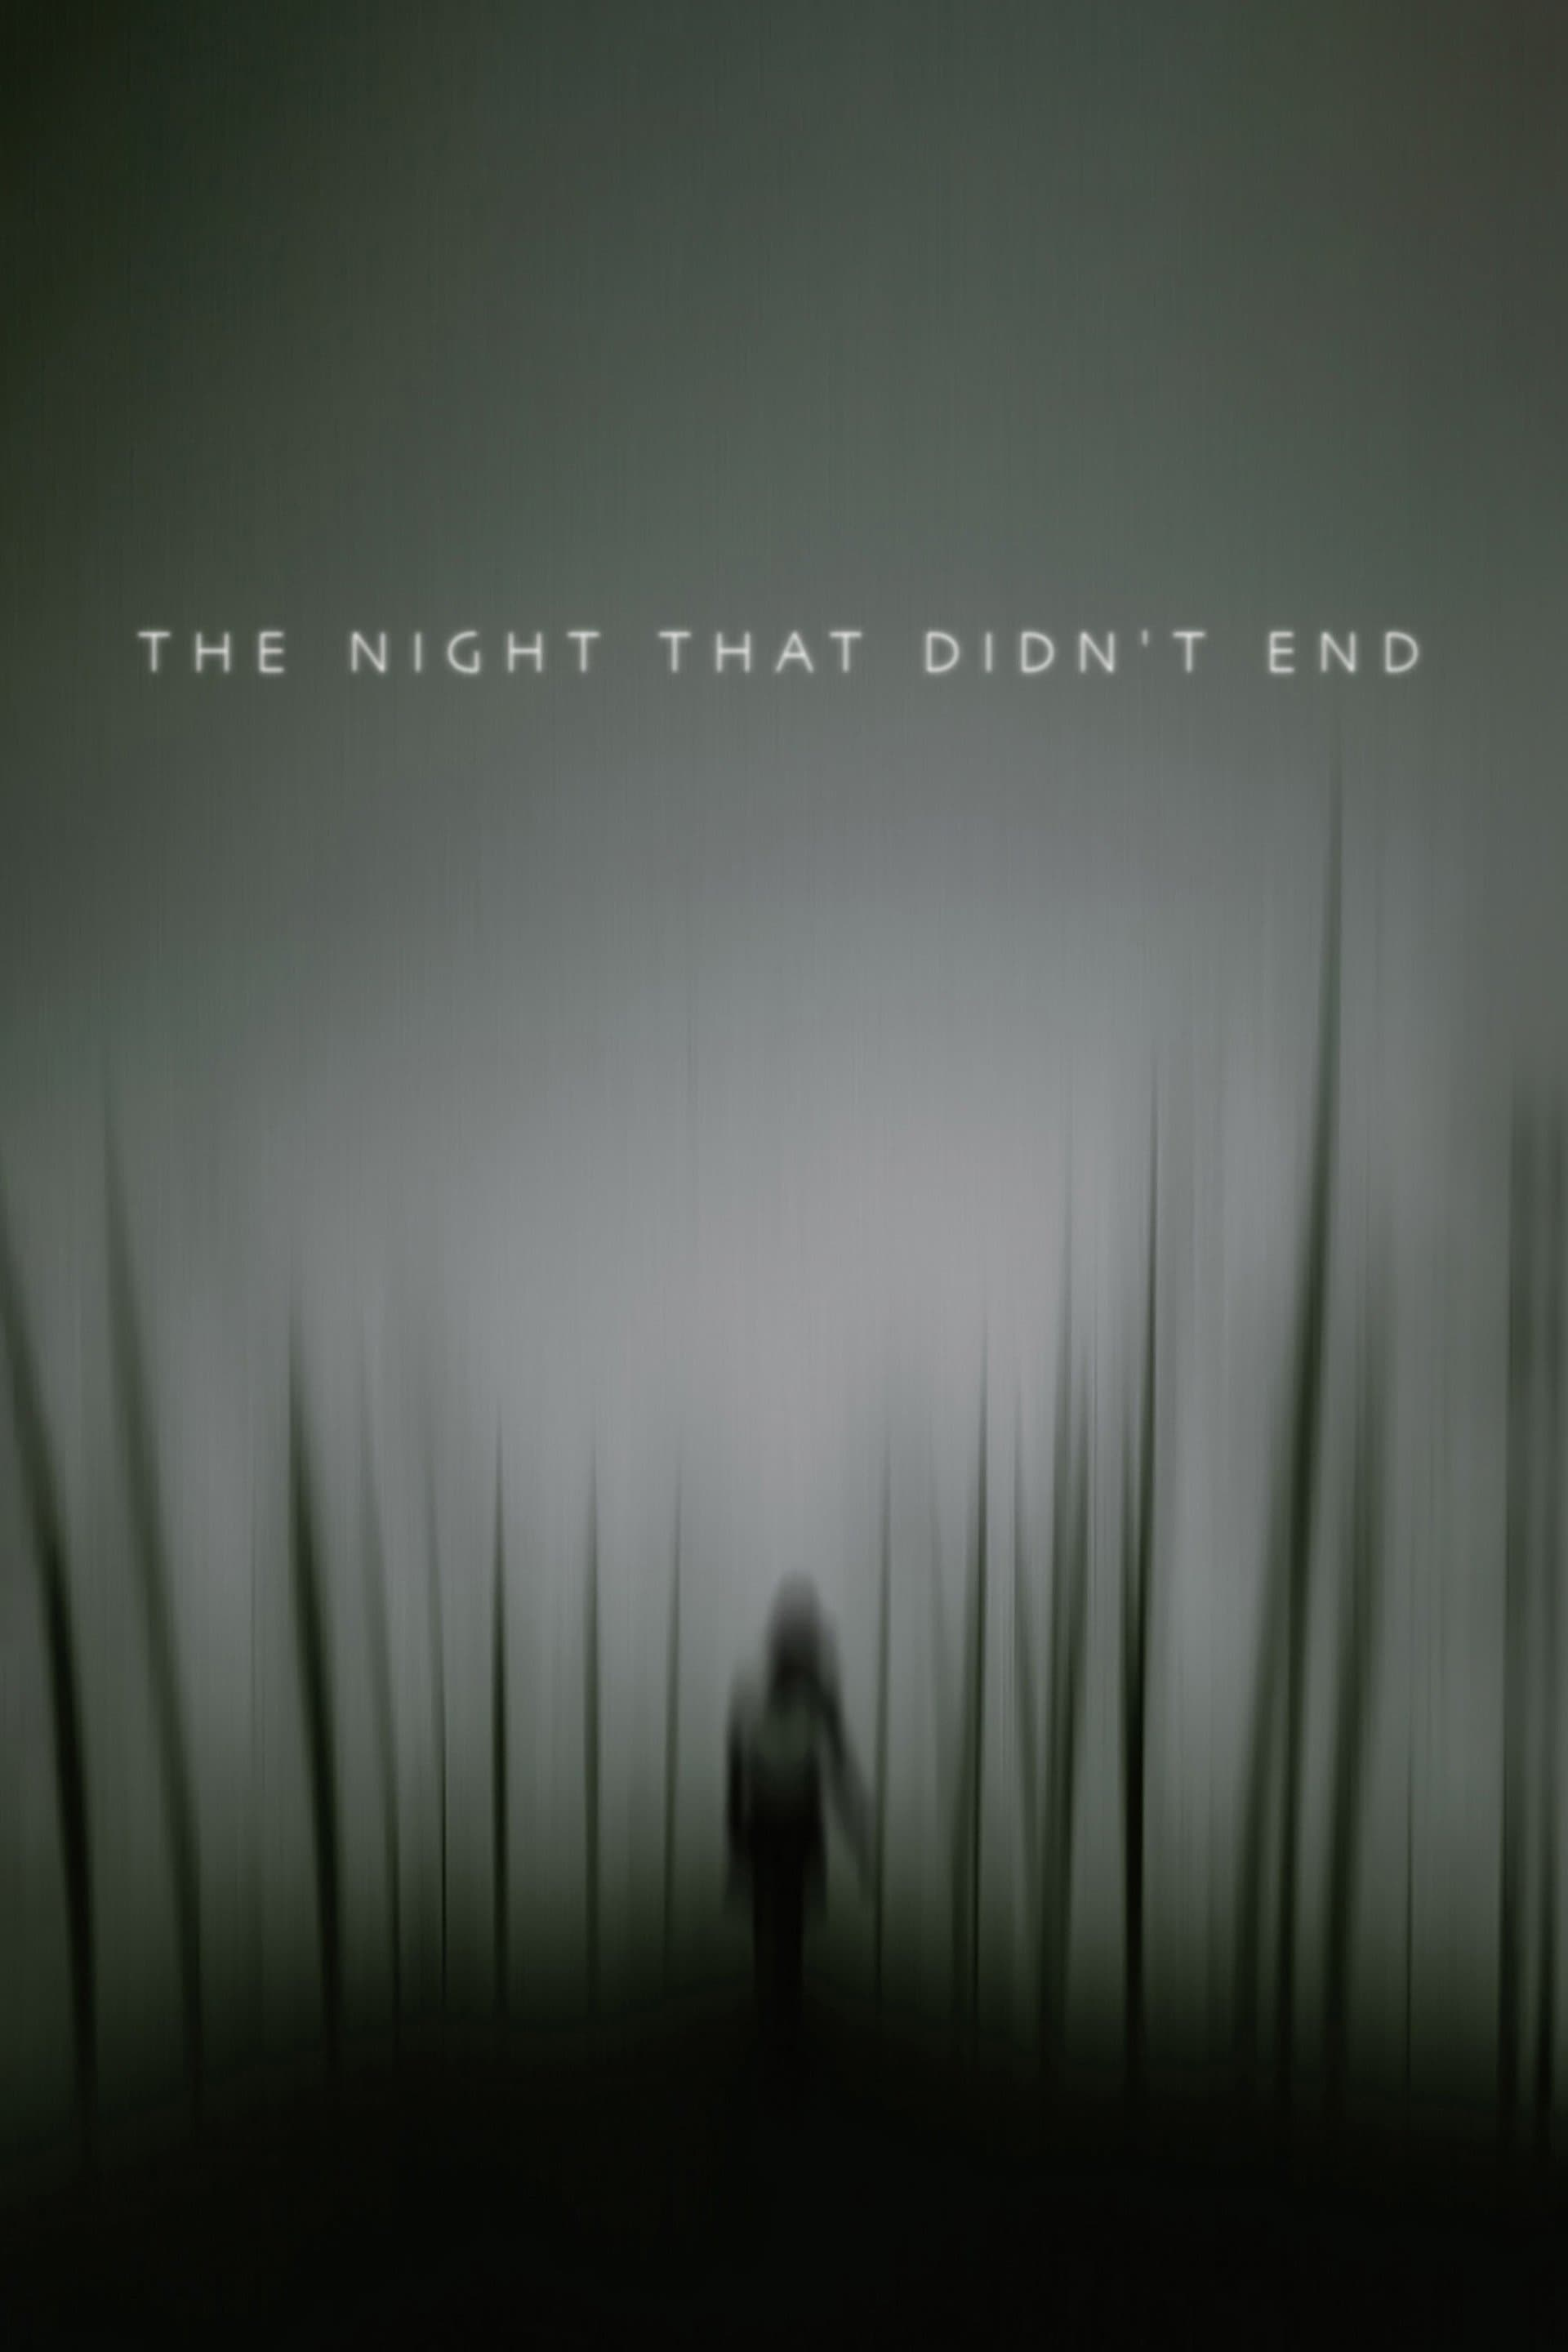 The Night That Didn't End (1970)